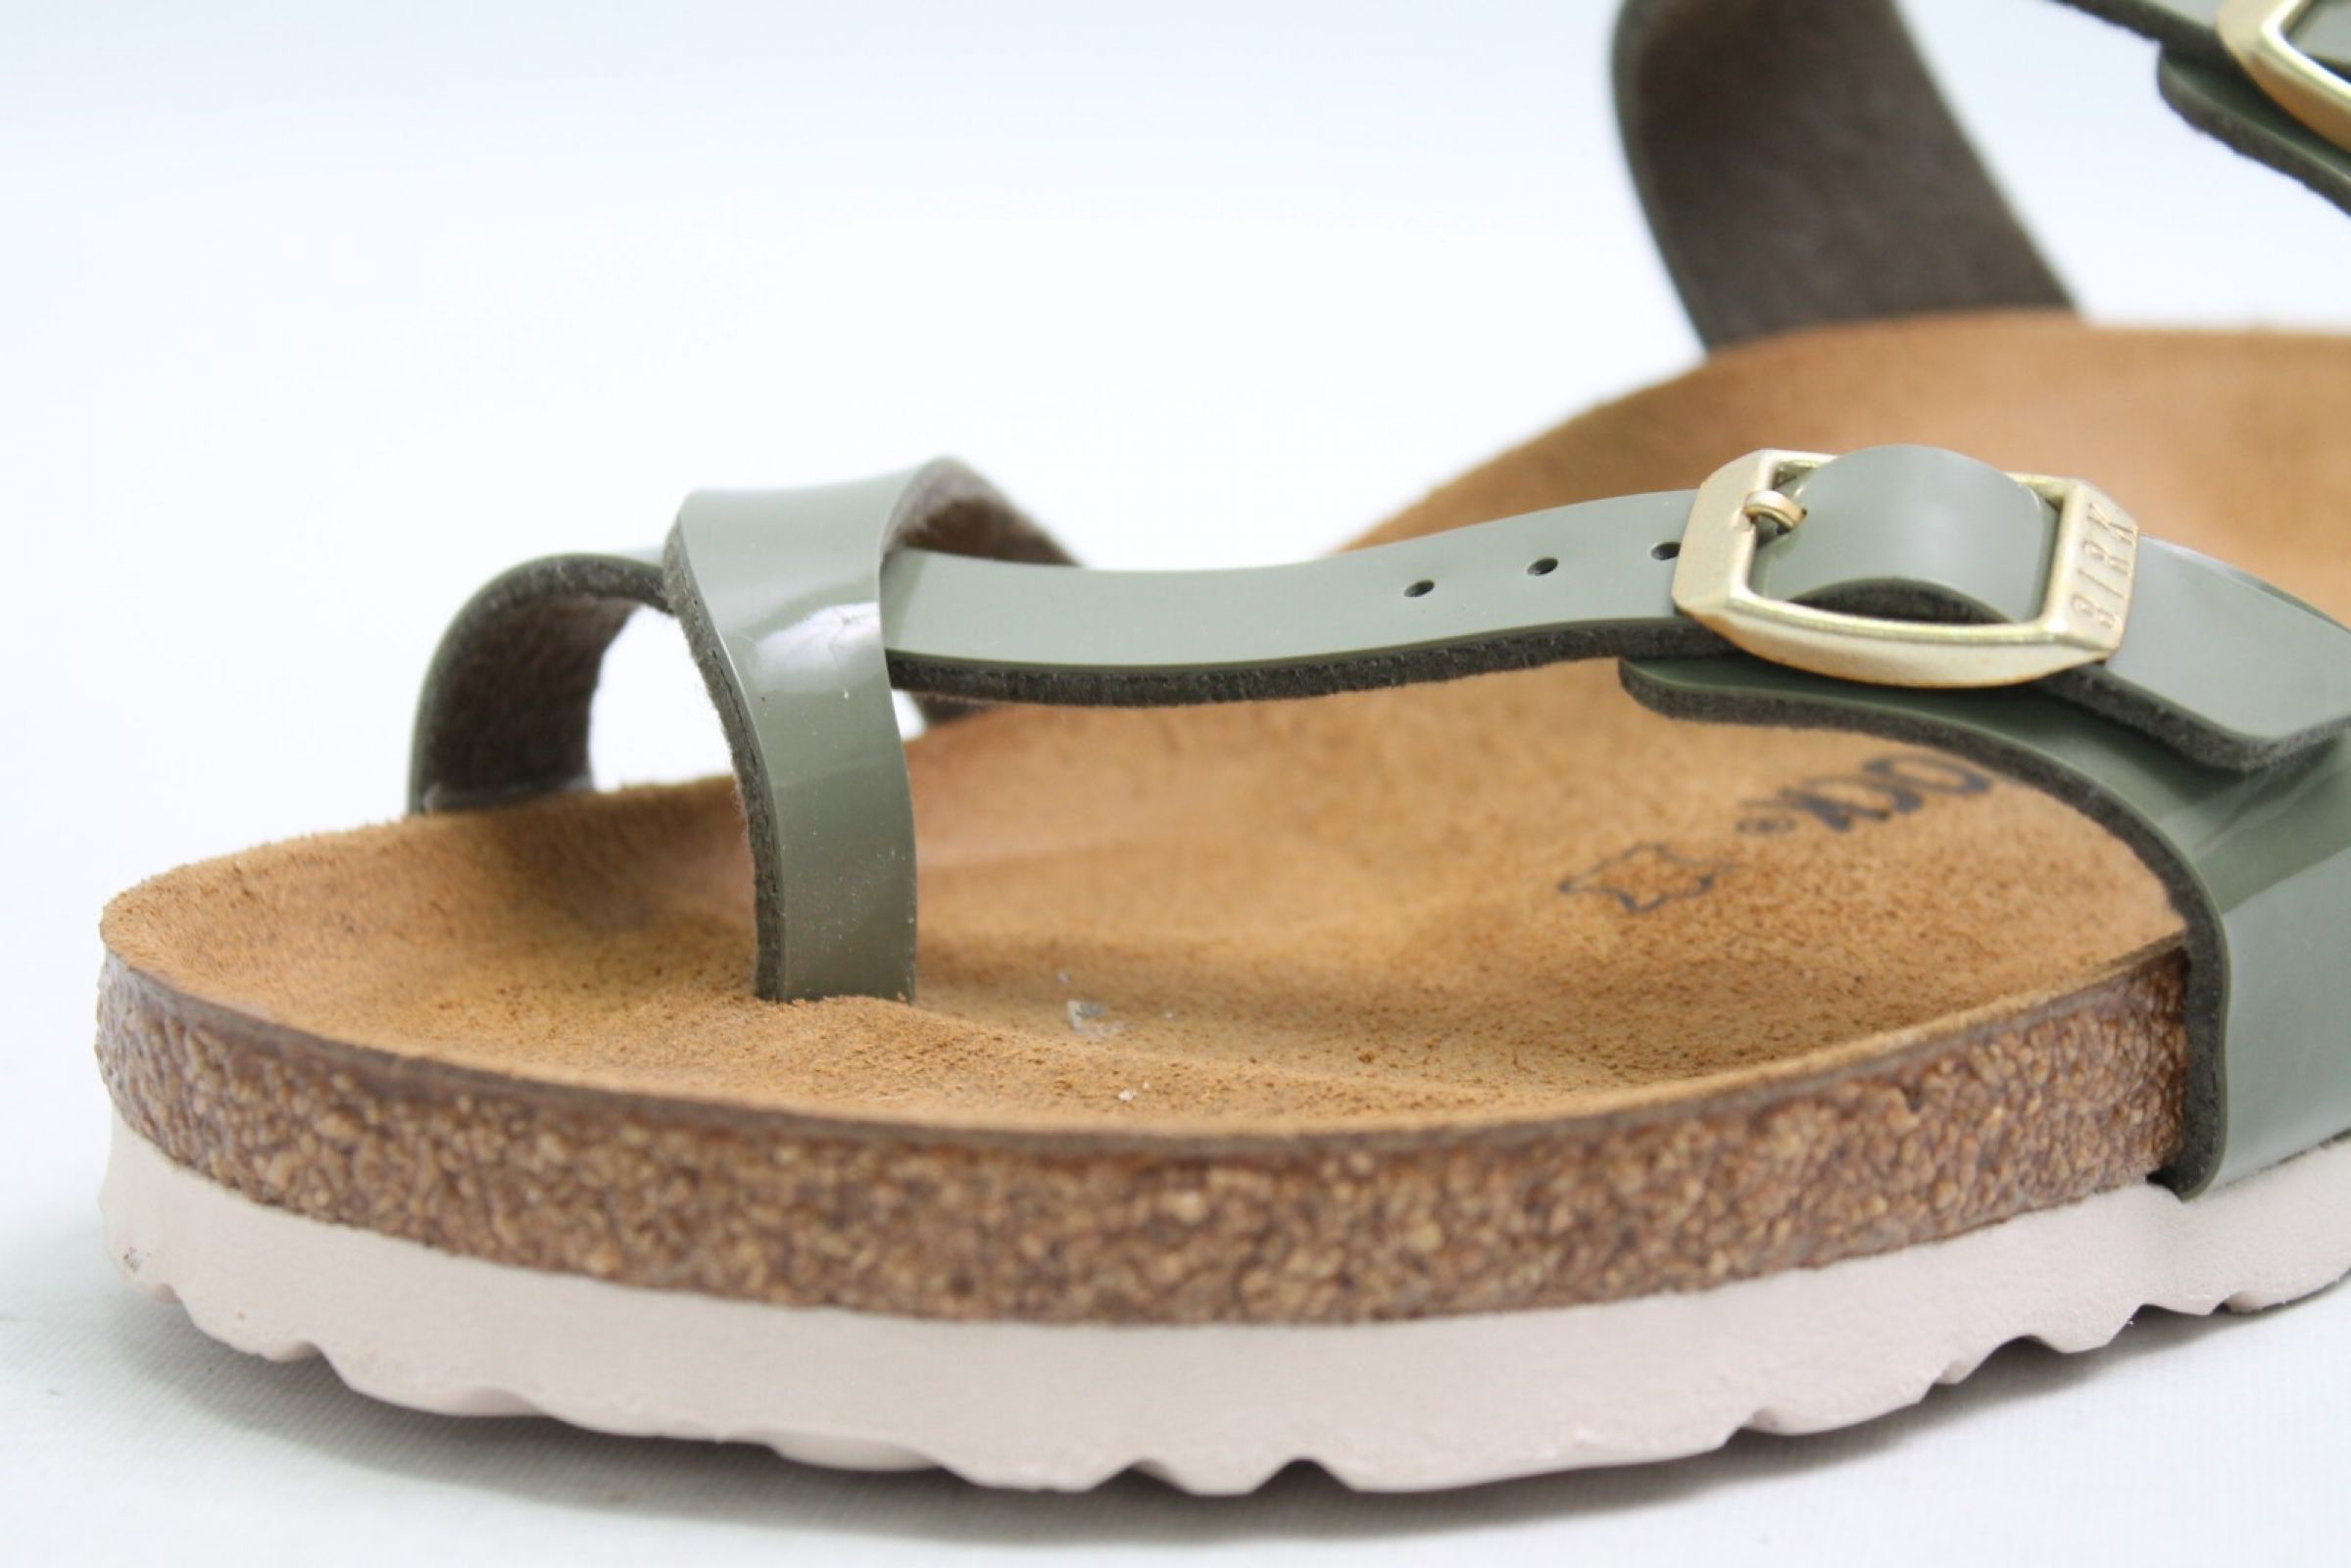 Details about Birkenstock Mules Green Patent Birko Flor Leather Footbed Mayari narrow width show original title